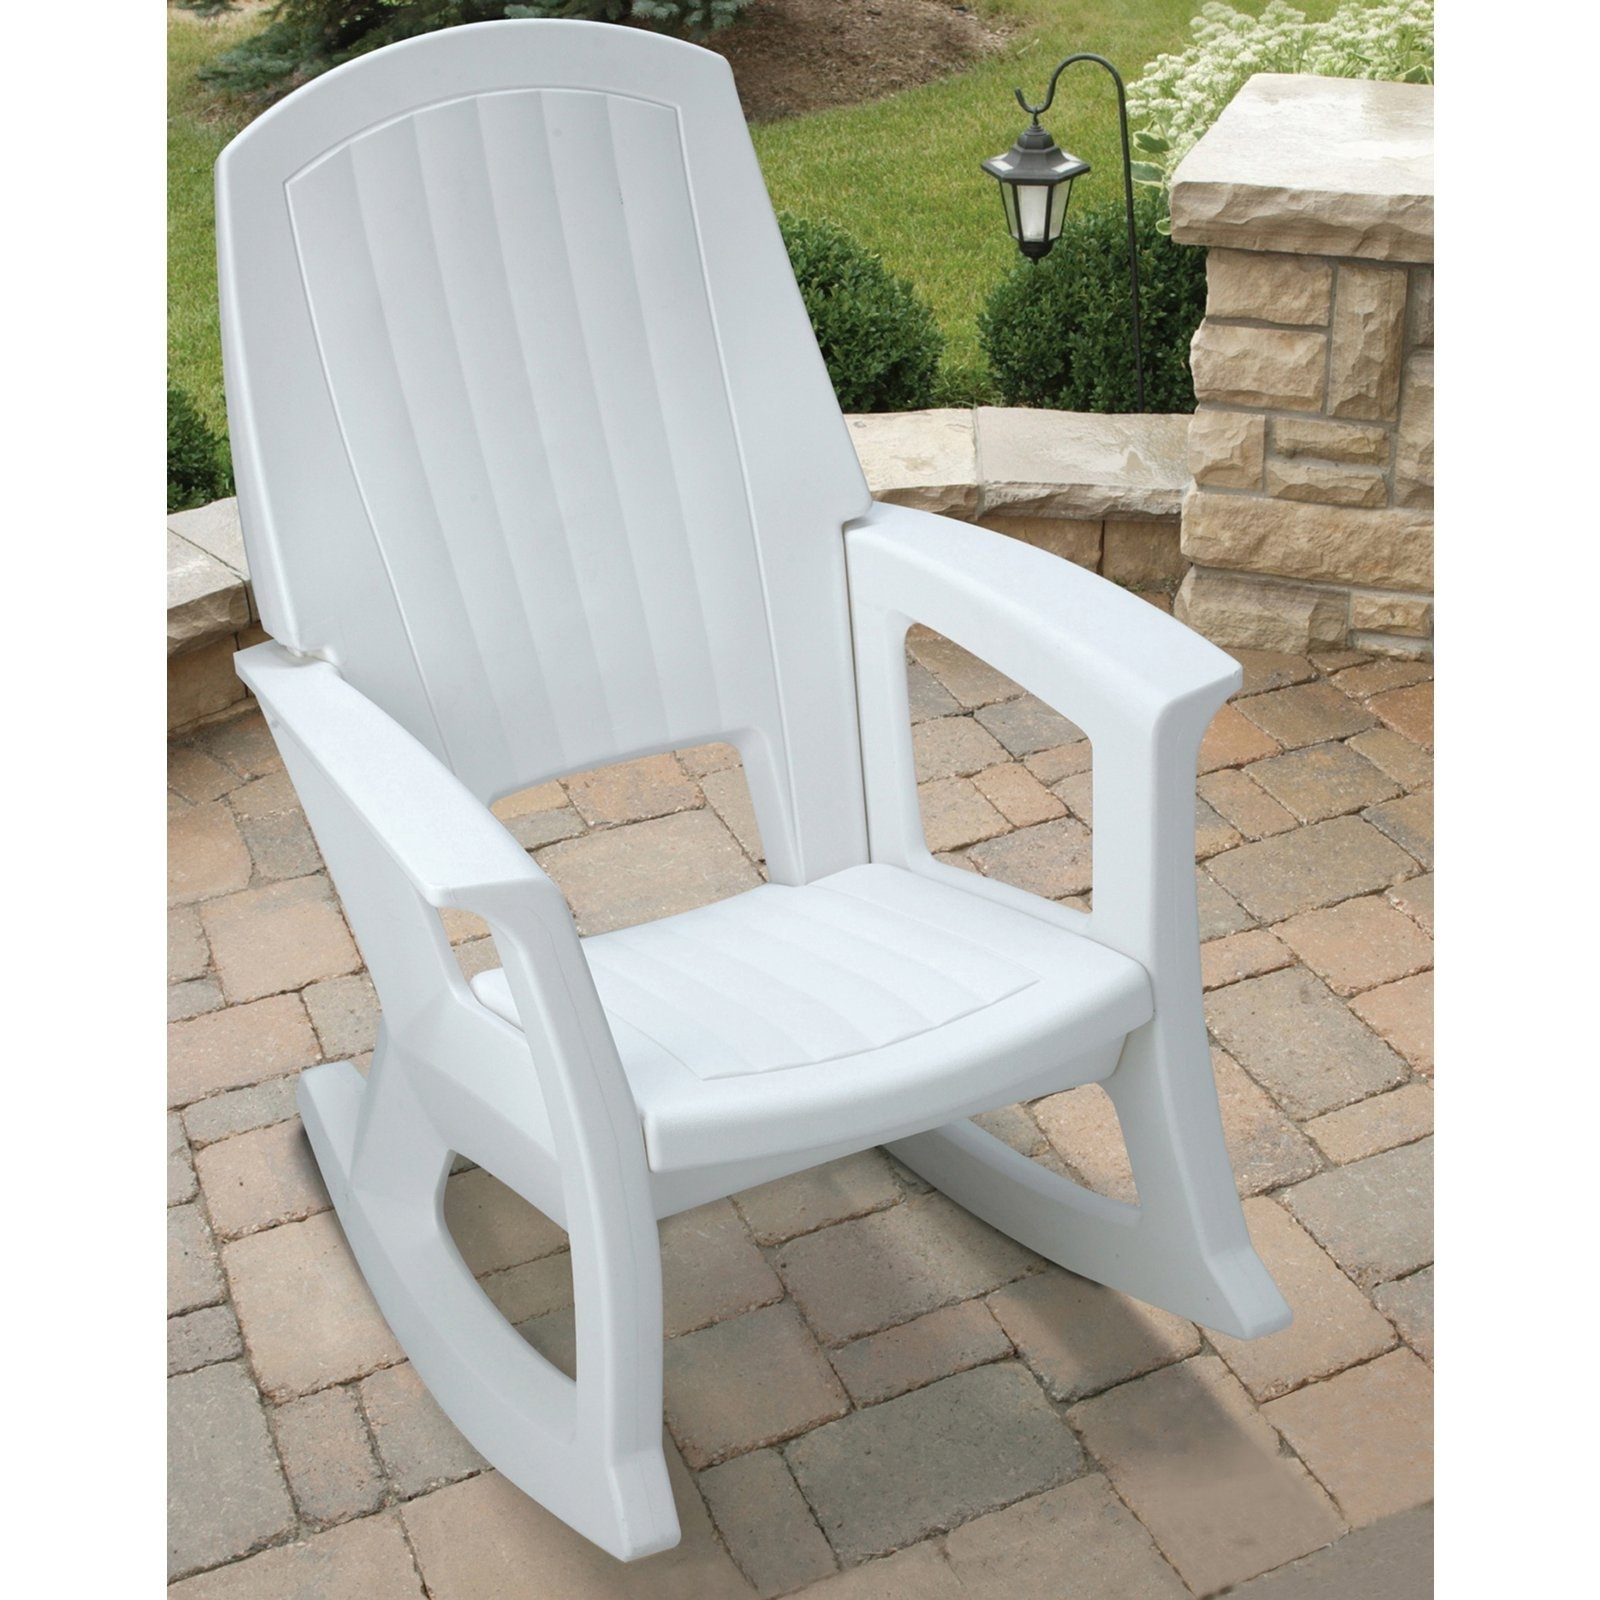 Semco Recycled Plastic Rocking Chair – Walmart Intended For Newest Resin Wicker Patio Rocking Chairs (View 12 of 15)